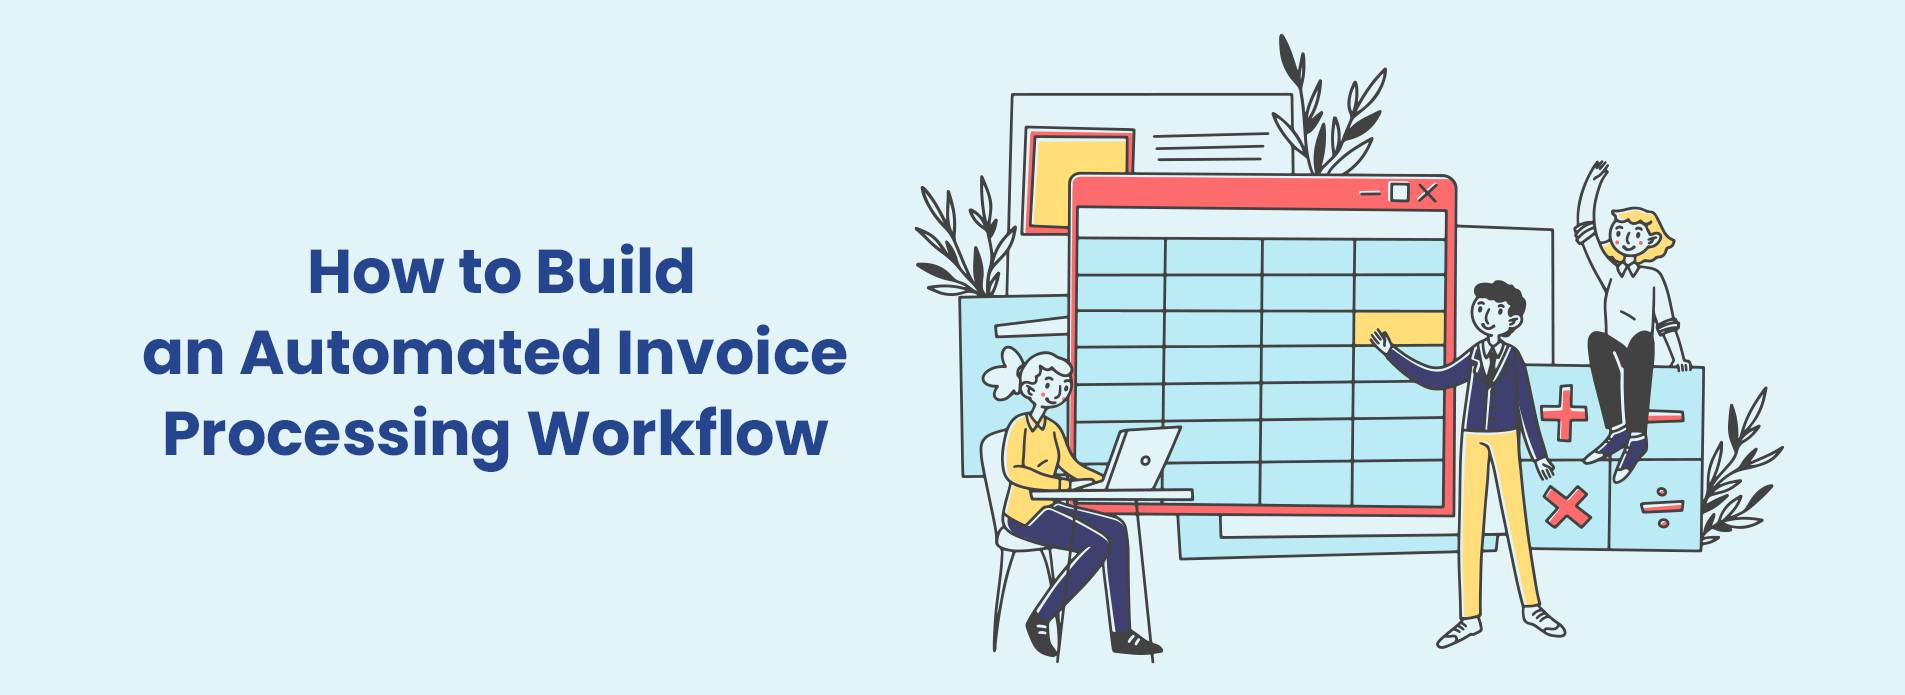 How to Automate Invoice Processing